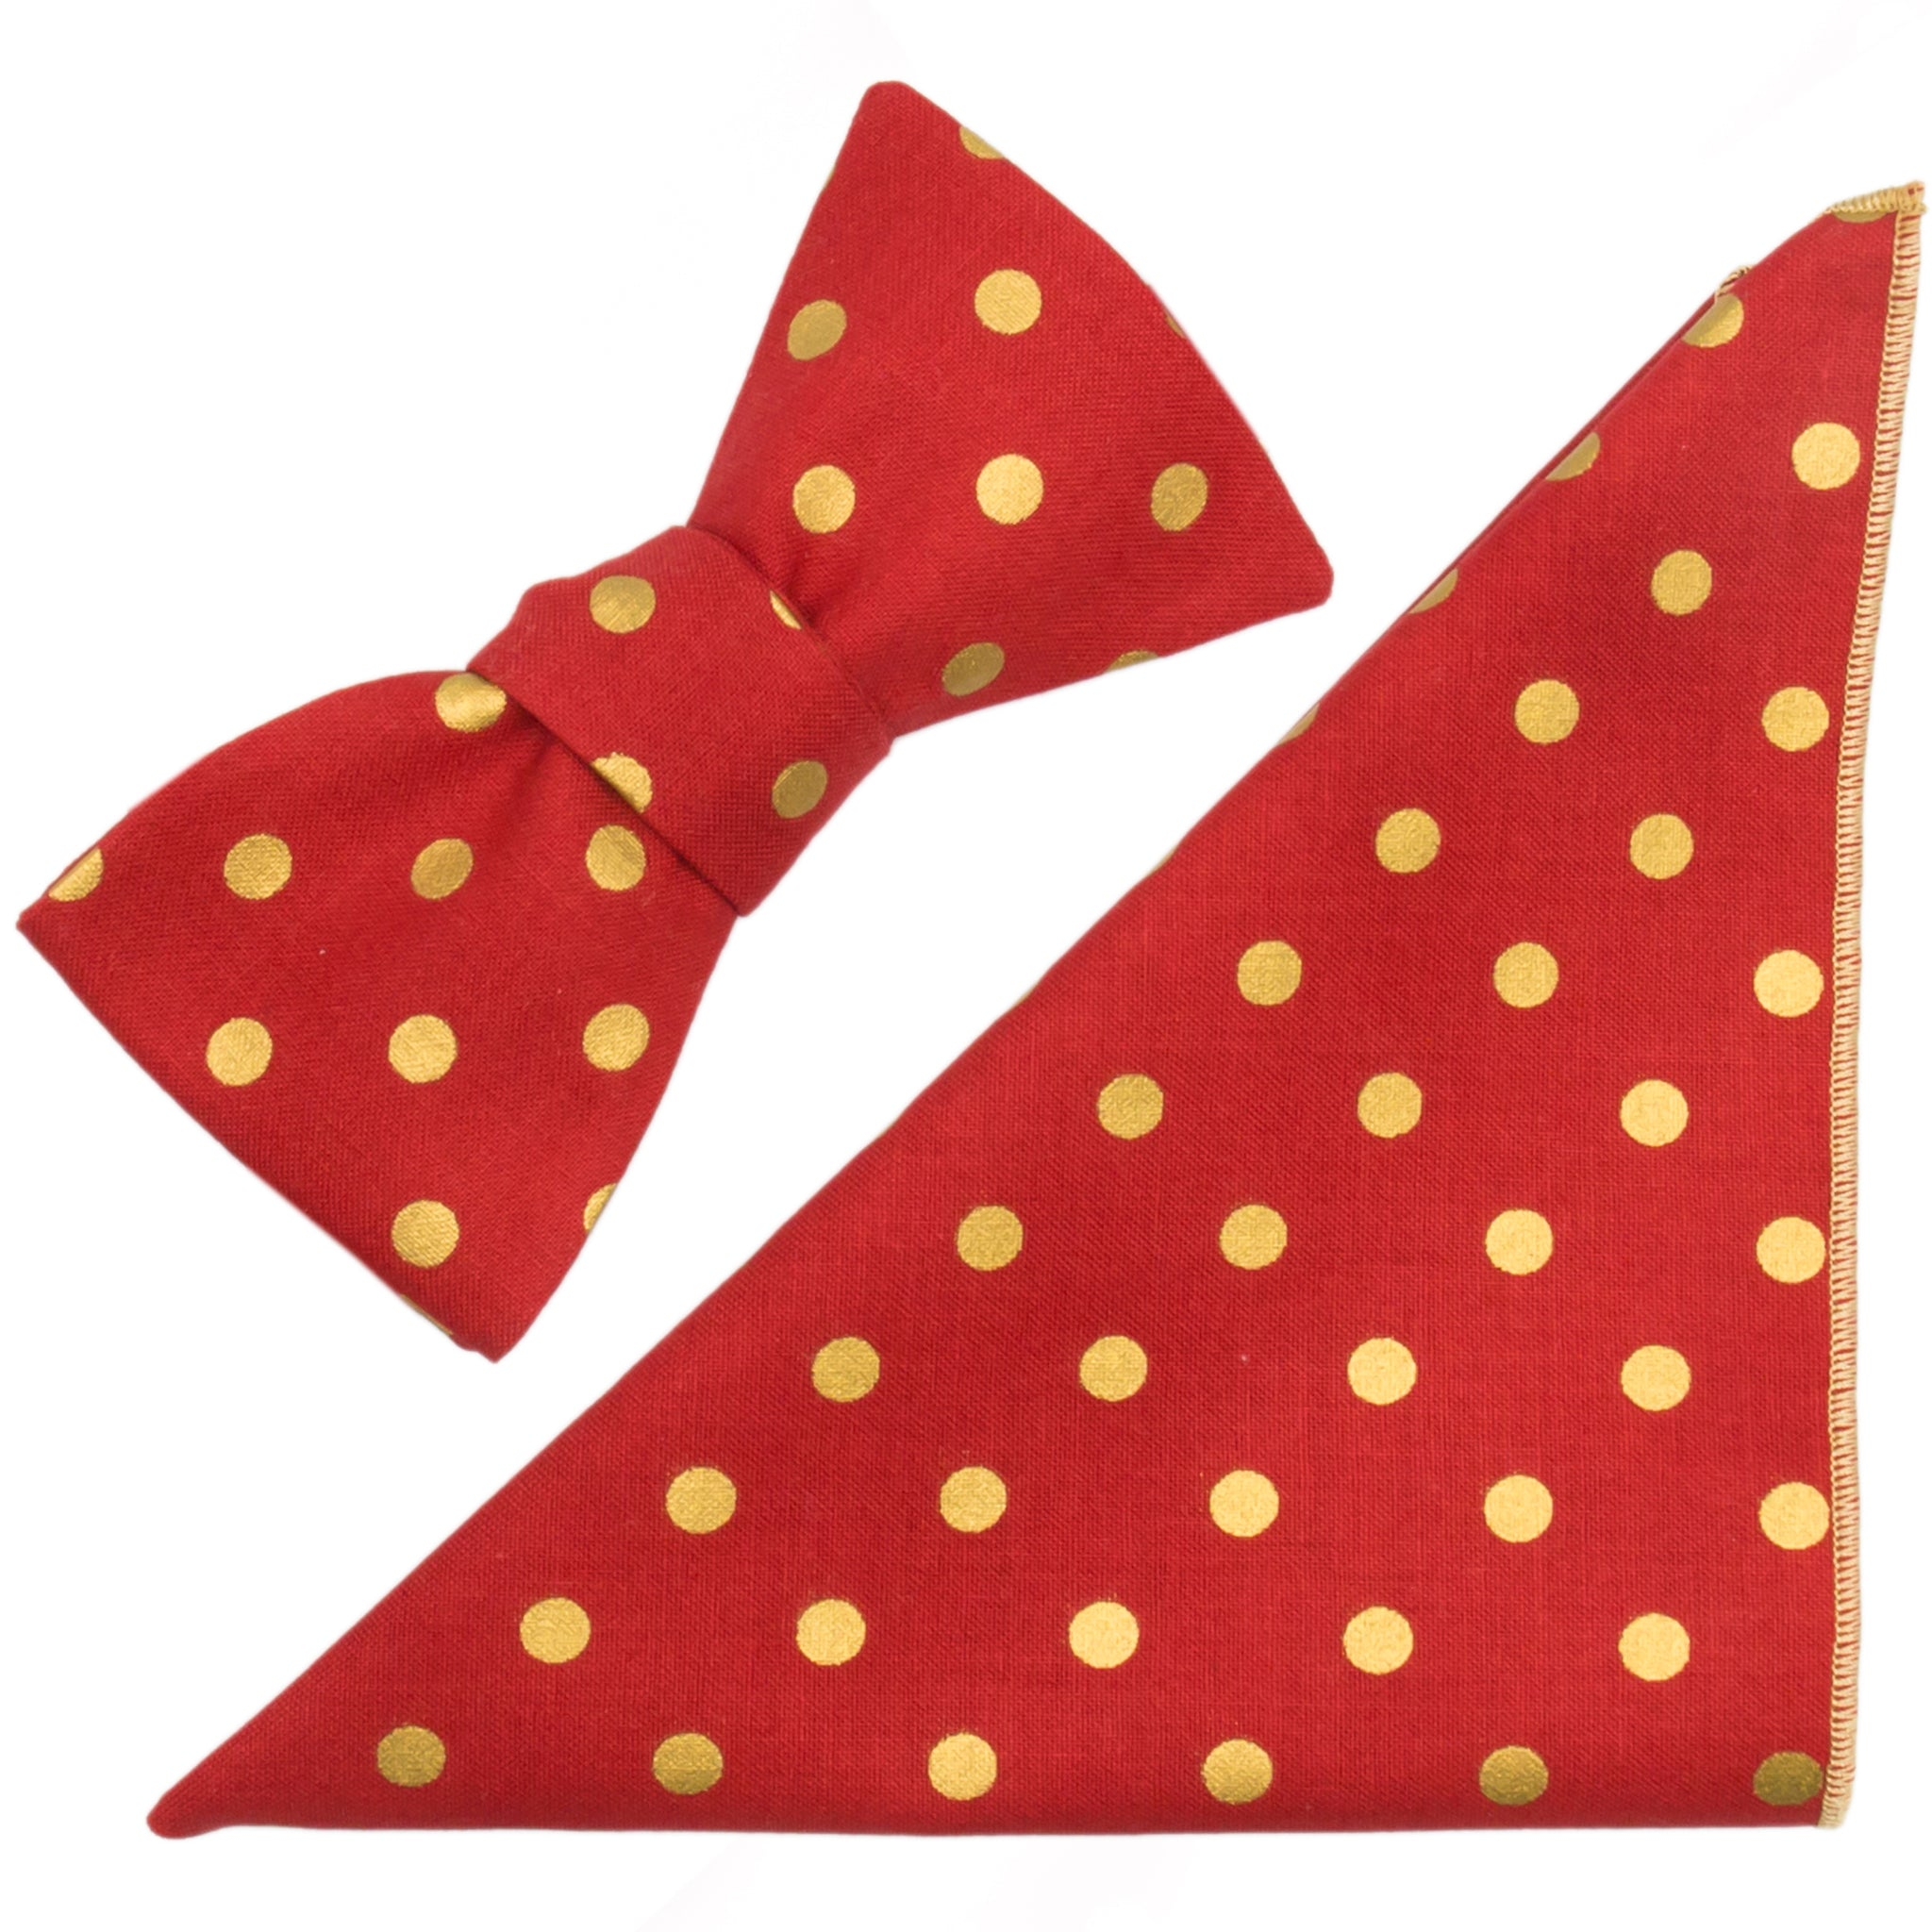 Red & Metallic Gold Polka Dot Cotton Bow Tie and Pocket Square Made in Canada